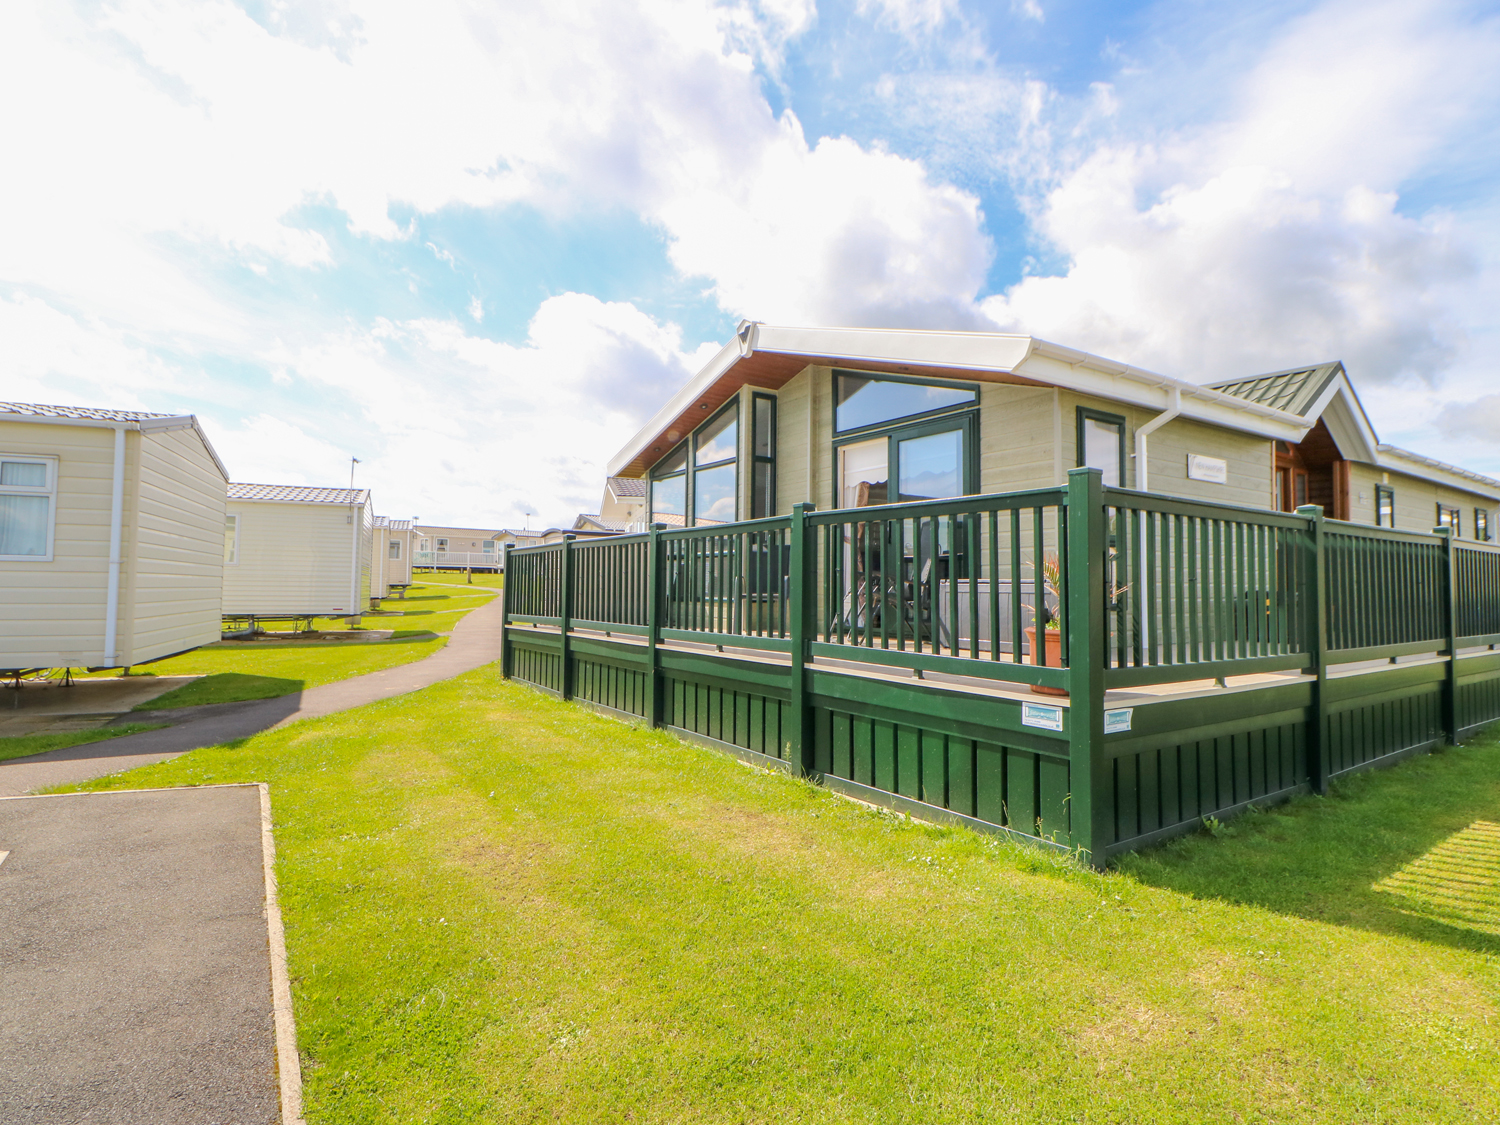 37 Horizon Park - 1009591 - photo 1